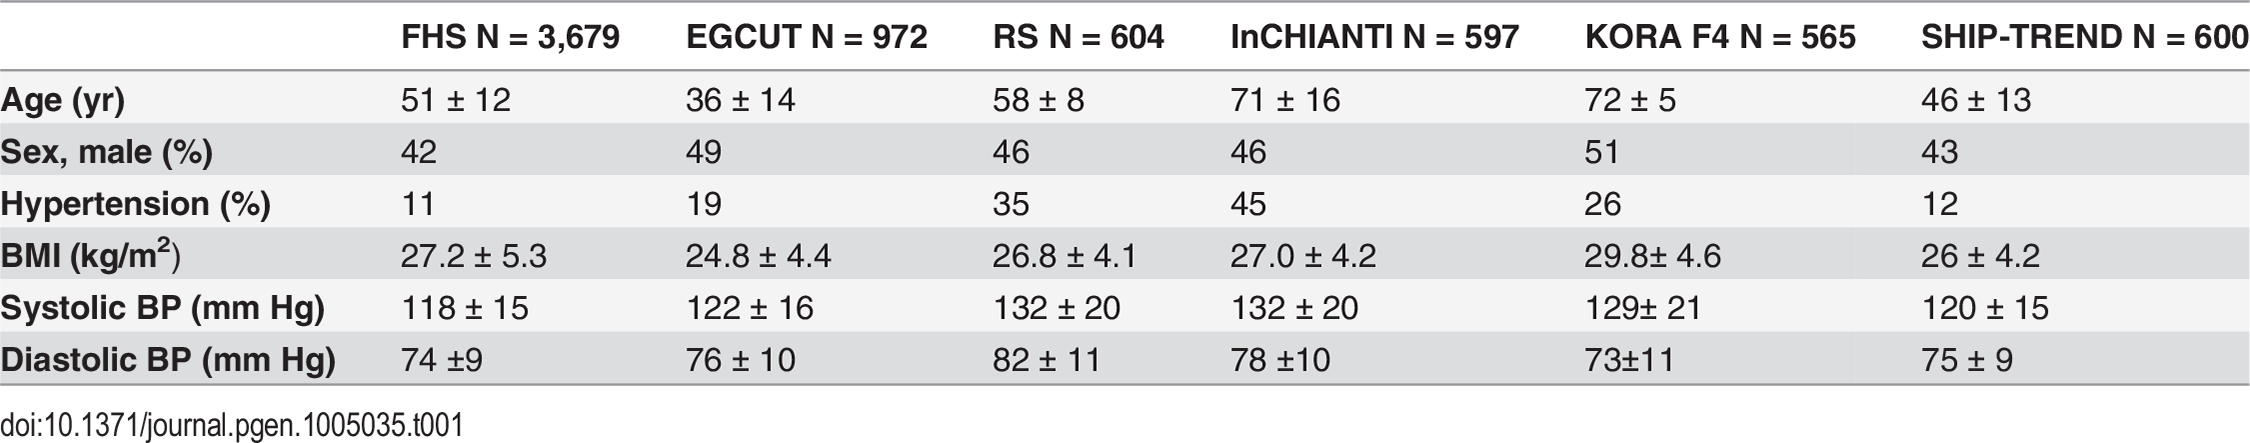 Clinical characteristics of the study cohorts.